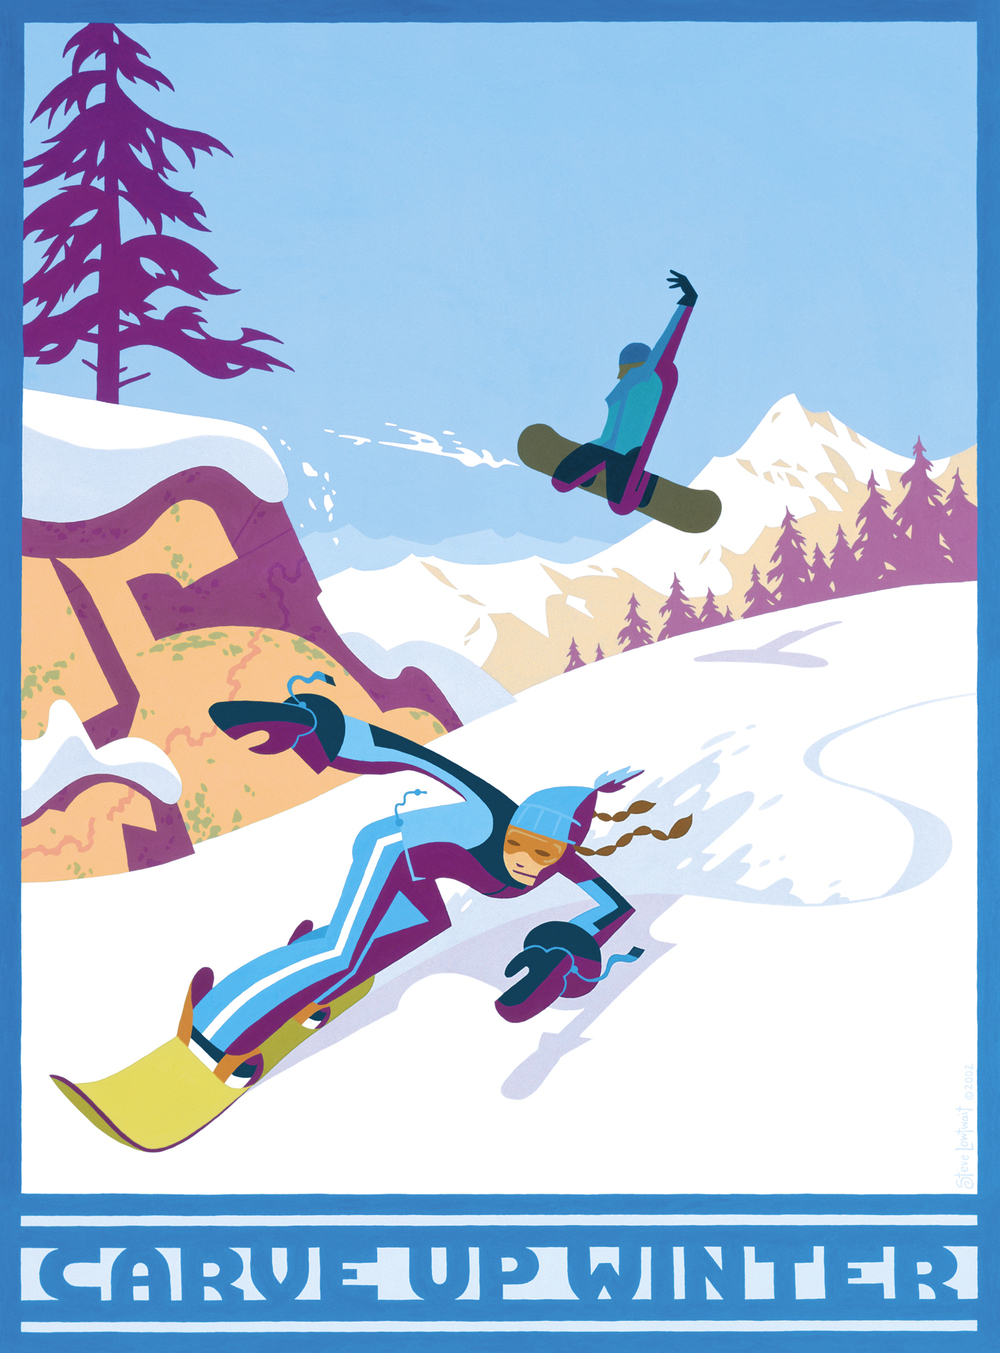 Carve Up Winter snowboarding poster